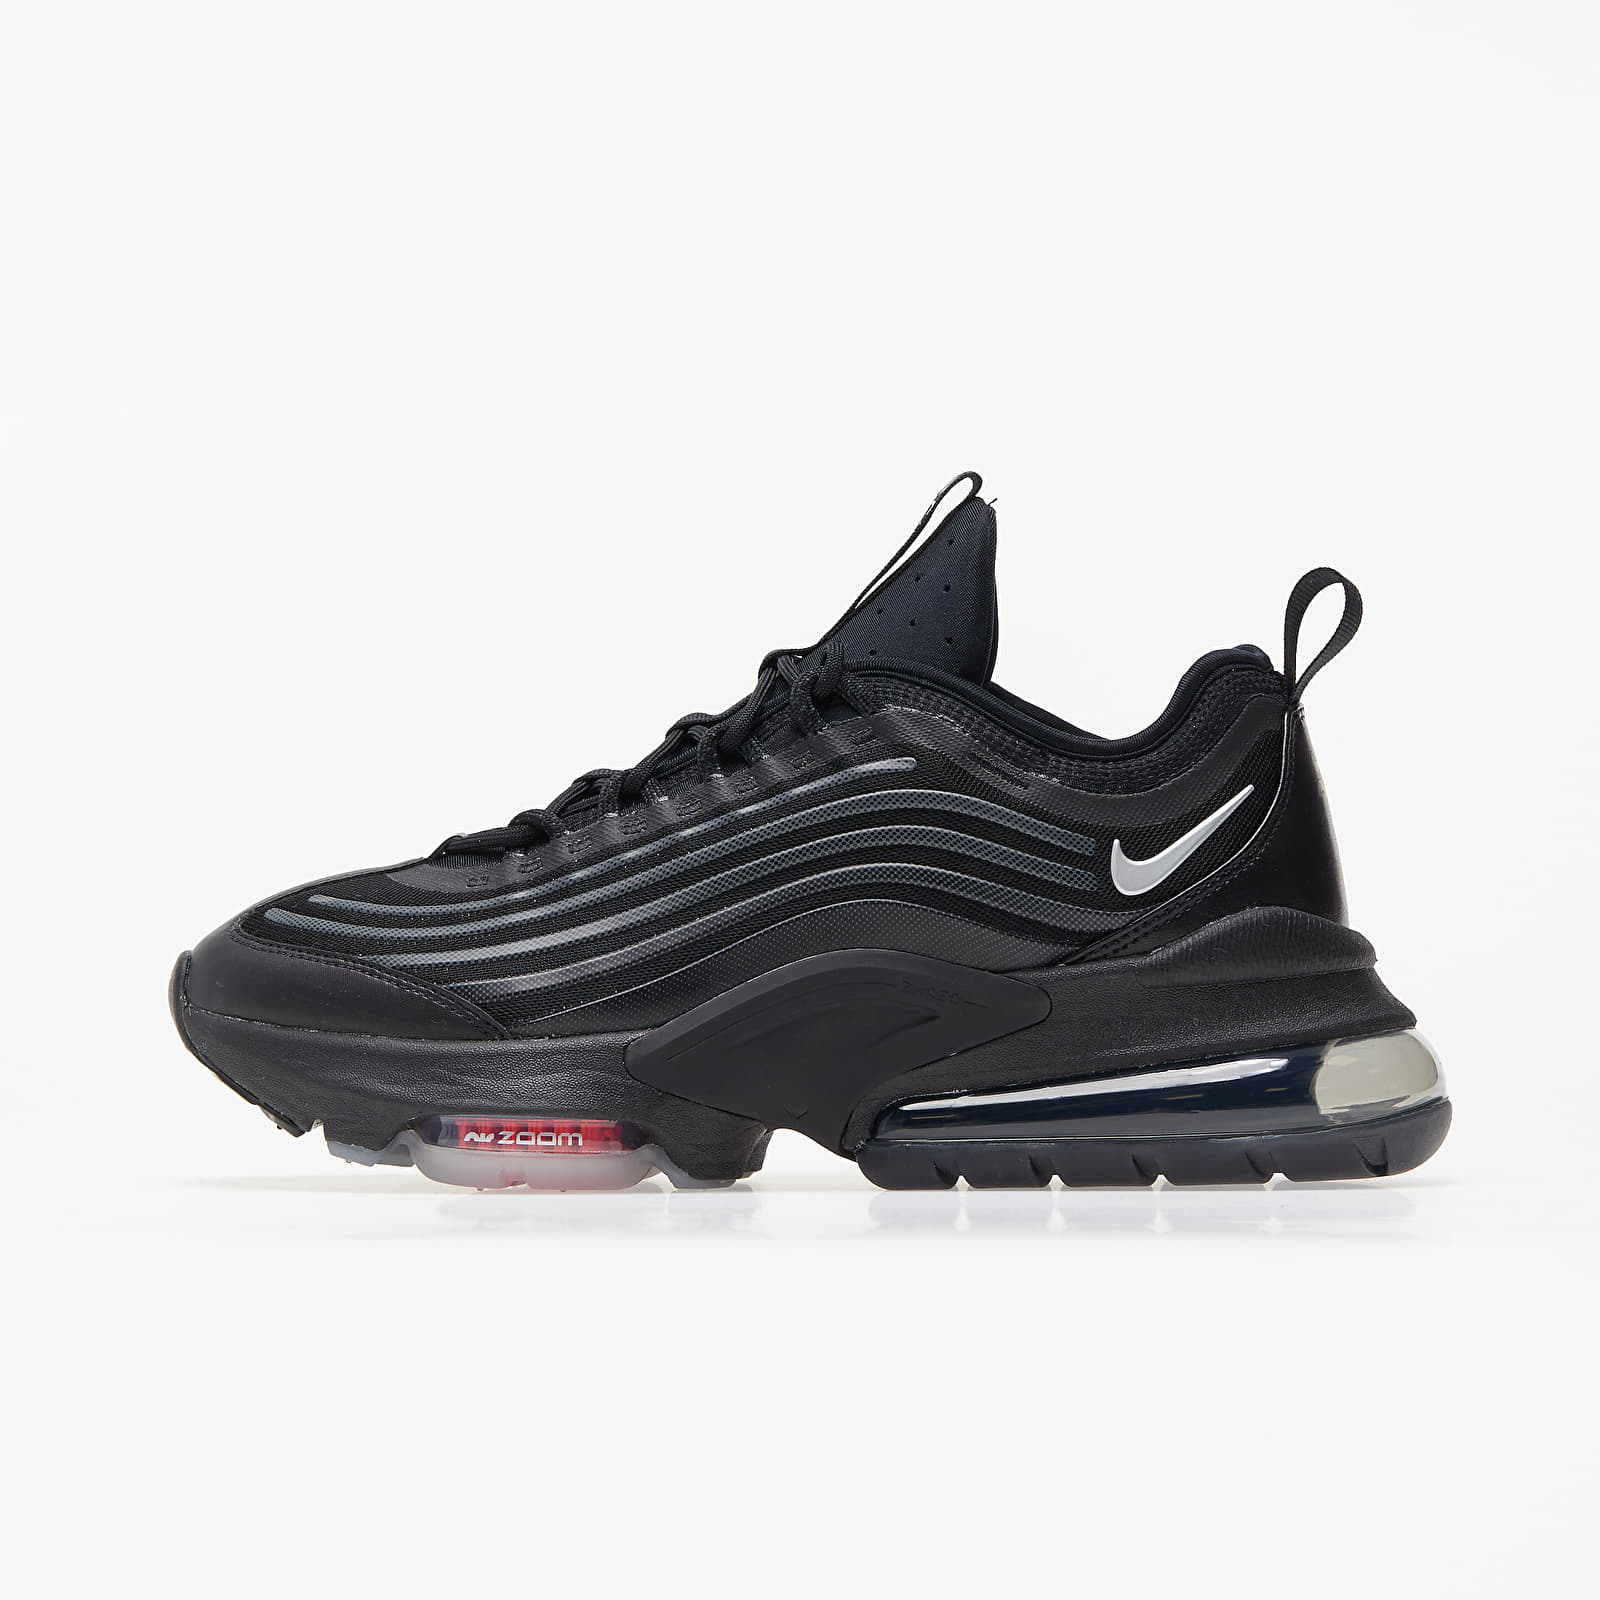 Nike Air Max ZM950 Black/ Black-Metallic Silver EUR 42